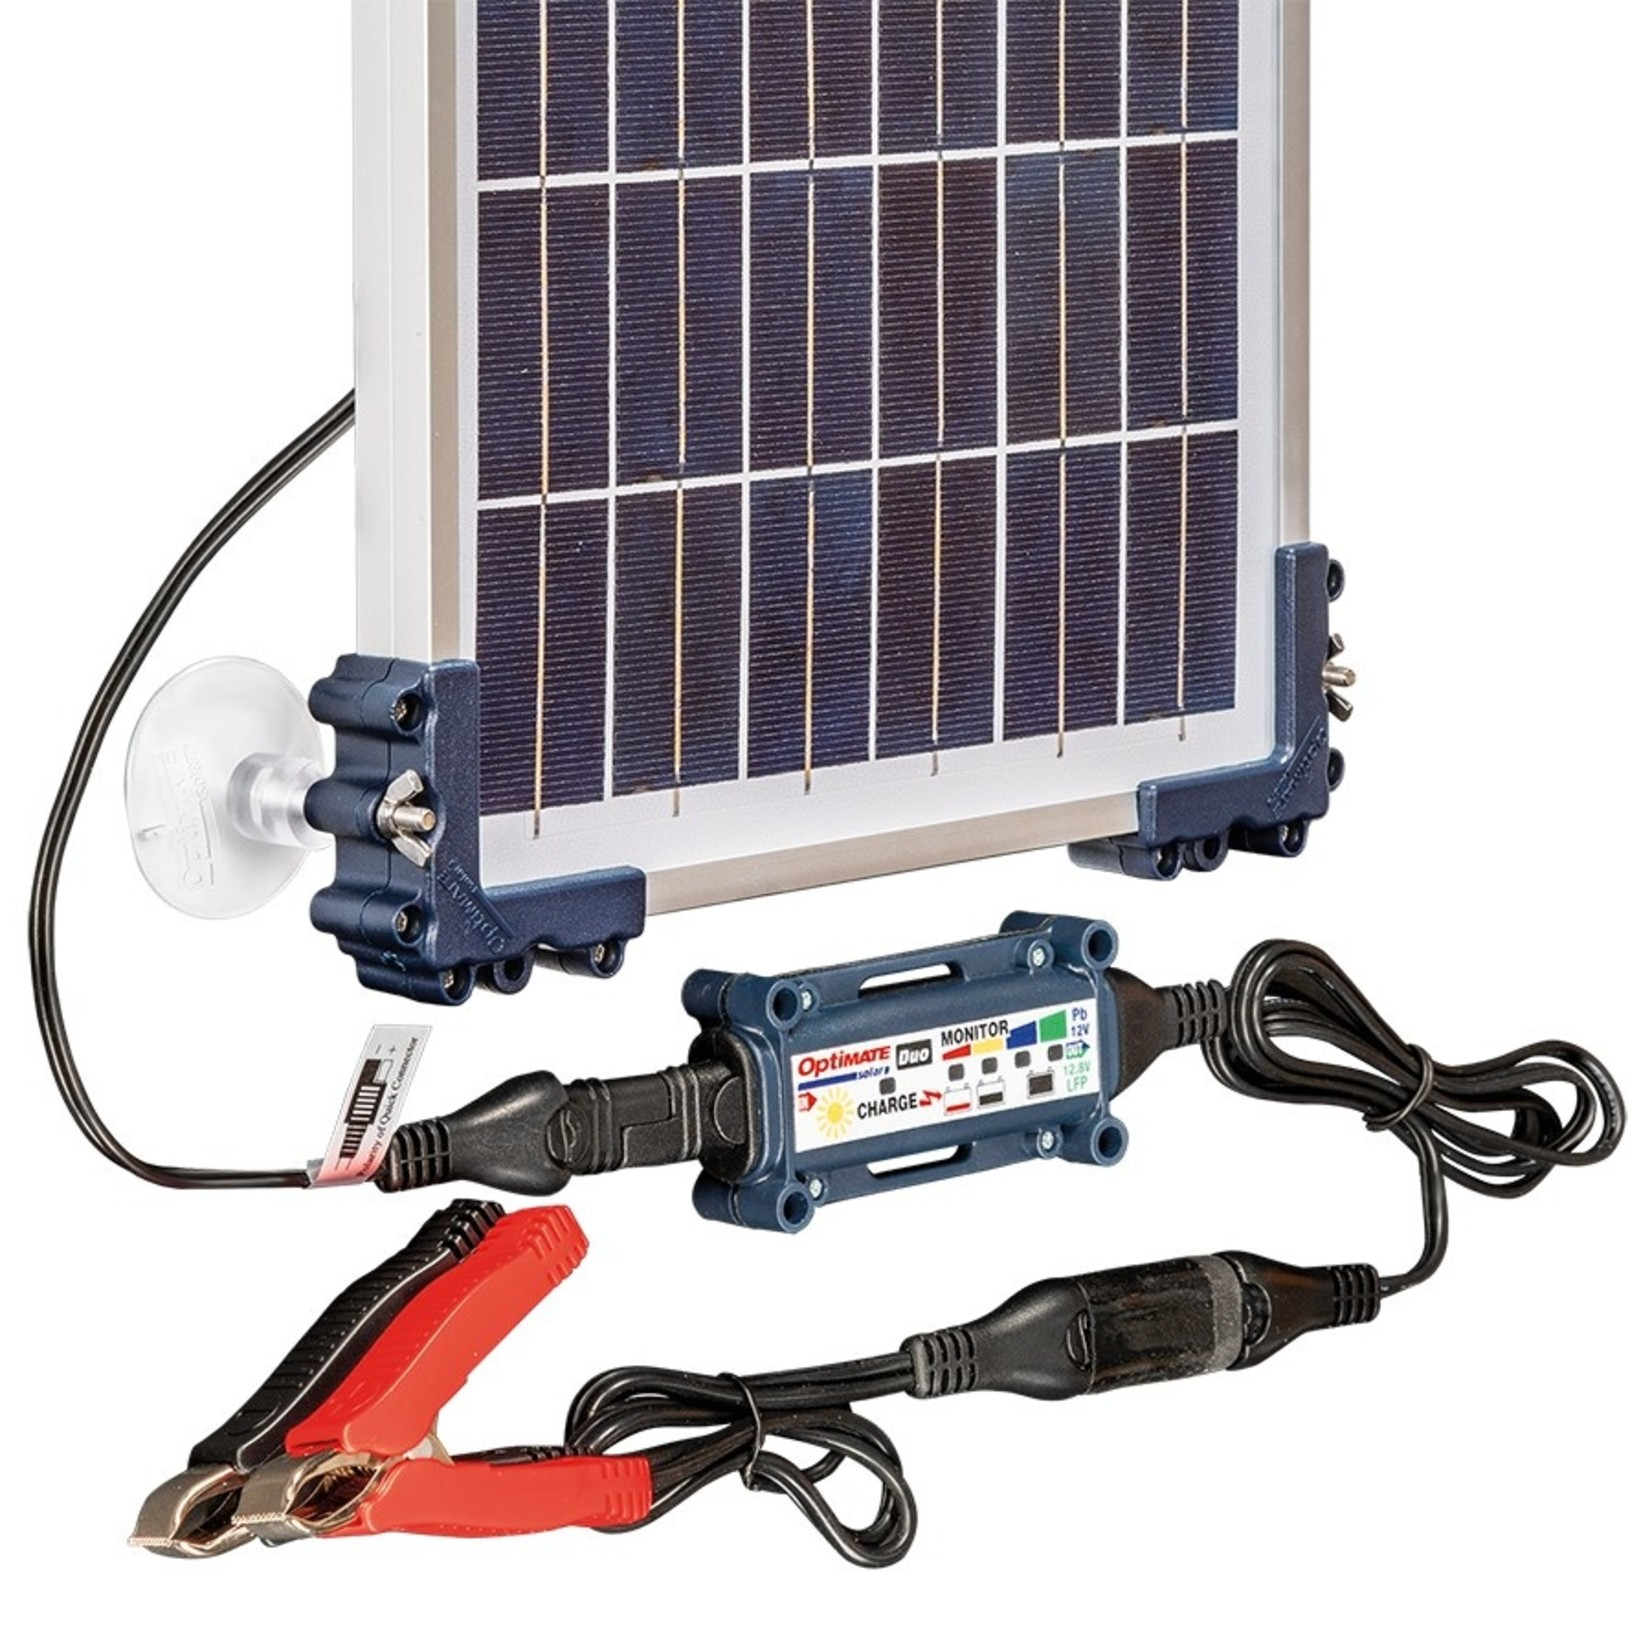 OptiMate DUO Solar 10W - Travel Kit - Battery Charger